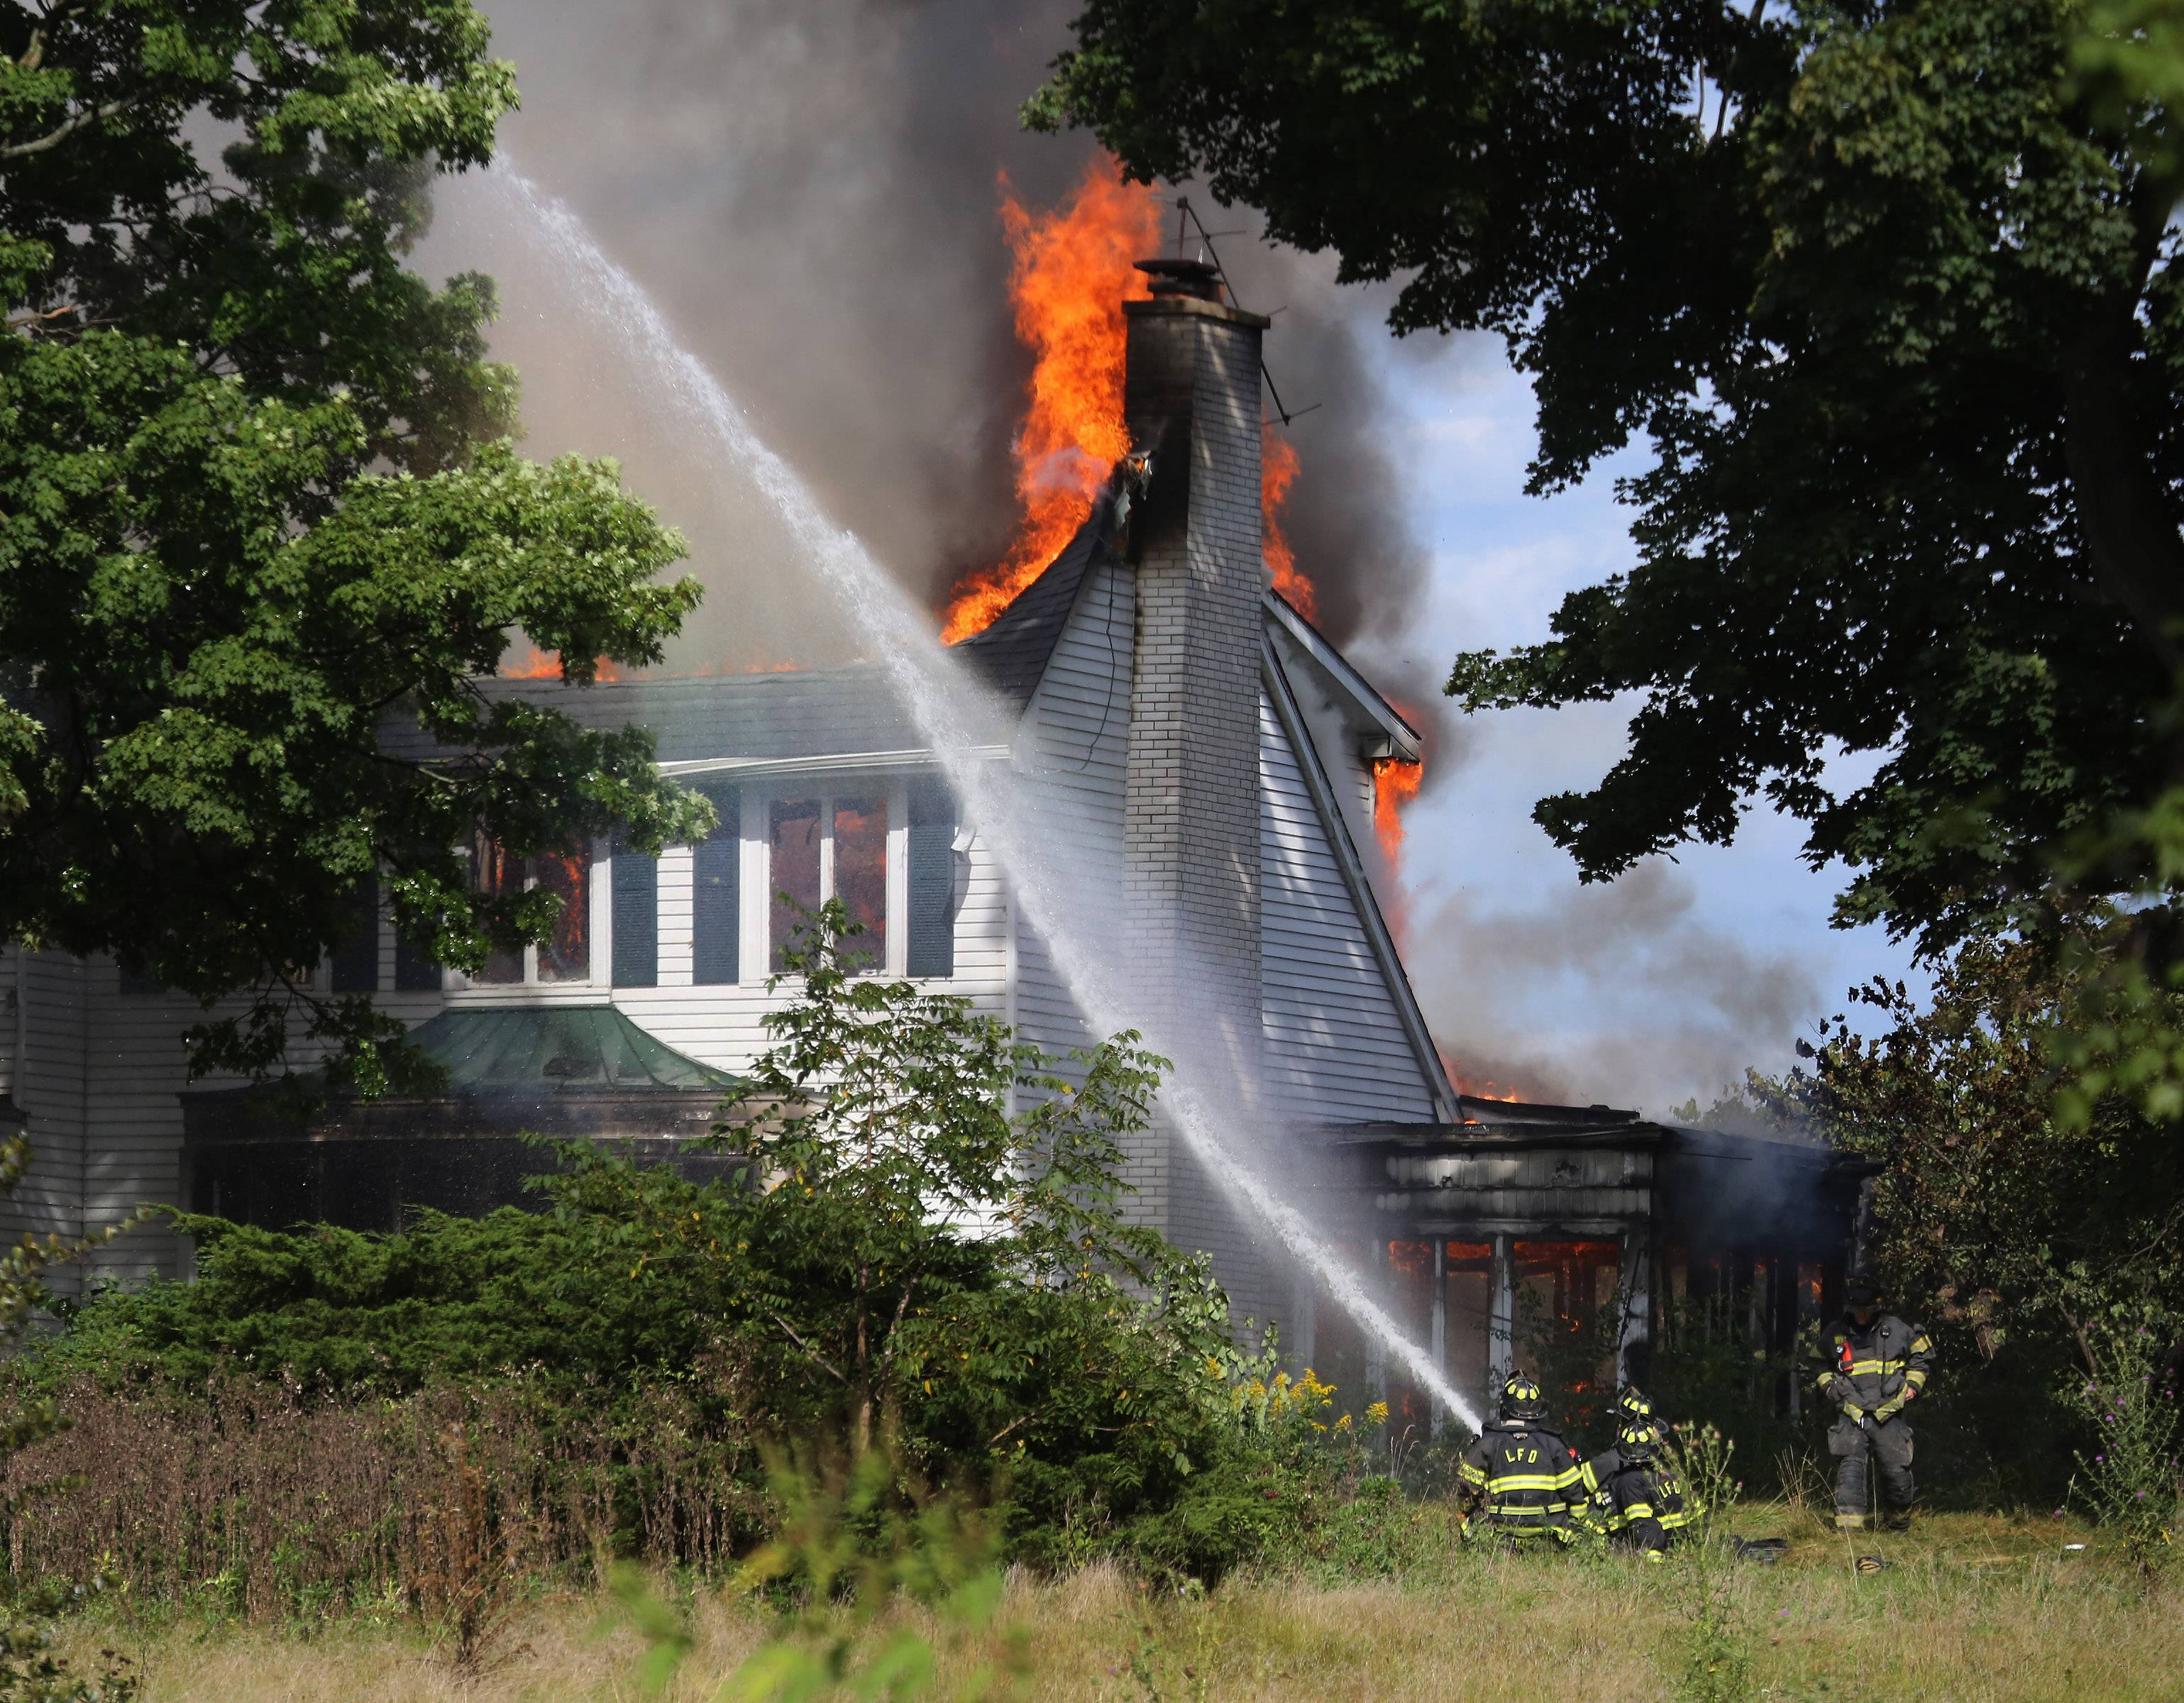 The Lake County Forest Preserve District's former headquarters along Milwaukee Avenue in Libertyville was engulfed in flames Thursday. Firefighters from Libertyville, Mundelein, Gurnee, Countryside, Lake Forest, Lake Villa, Round Lake and others battled the blaze throughout the afternoon.